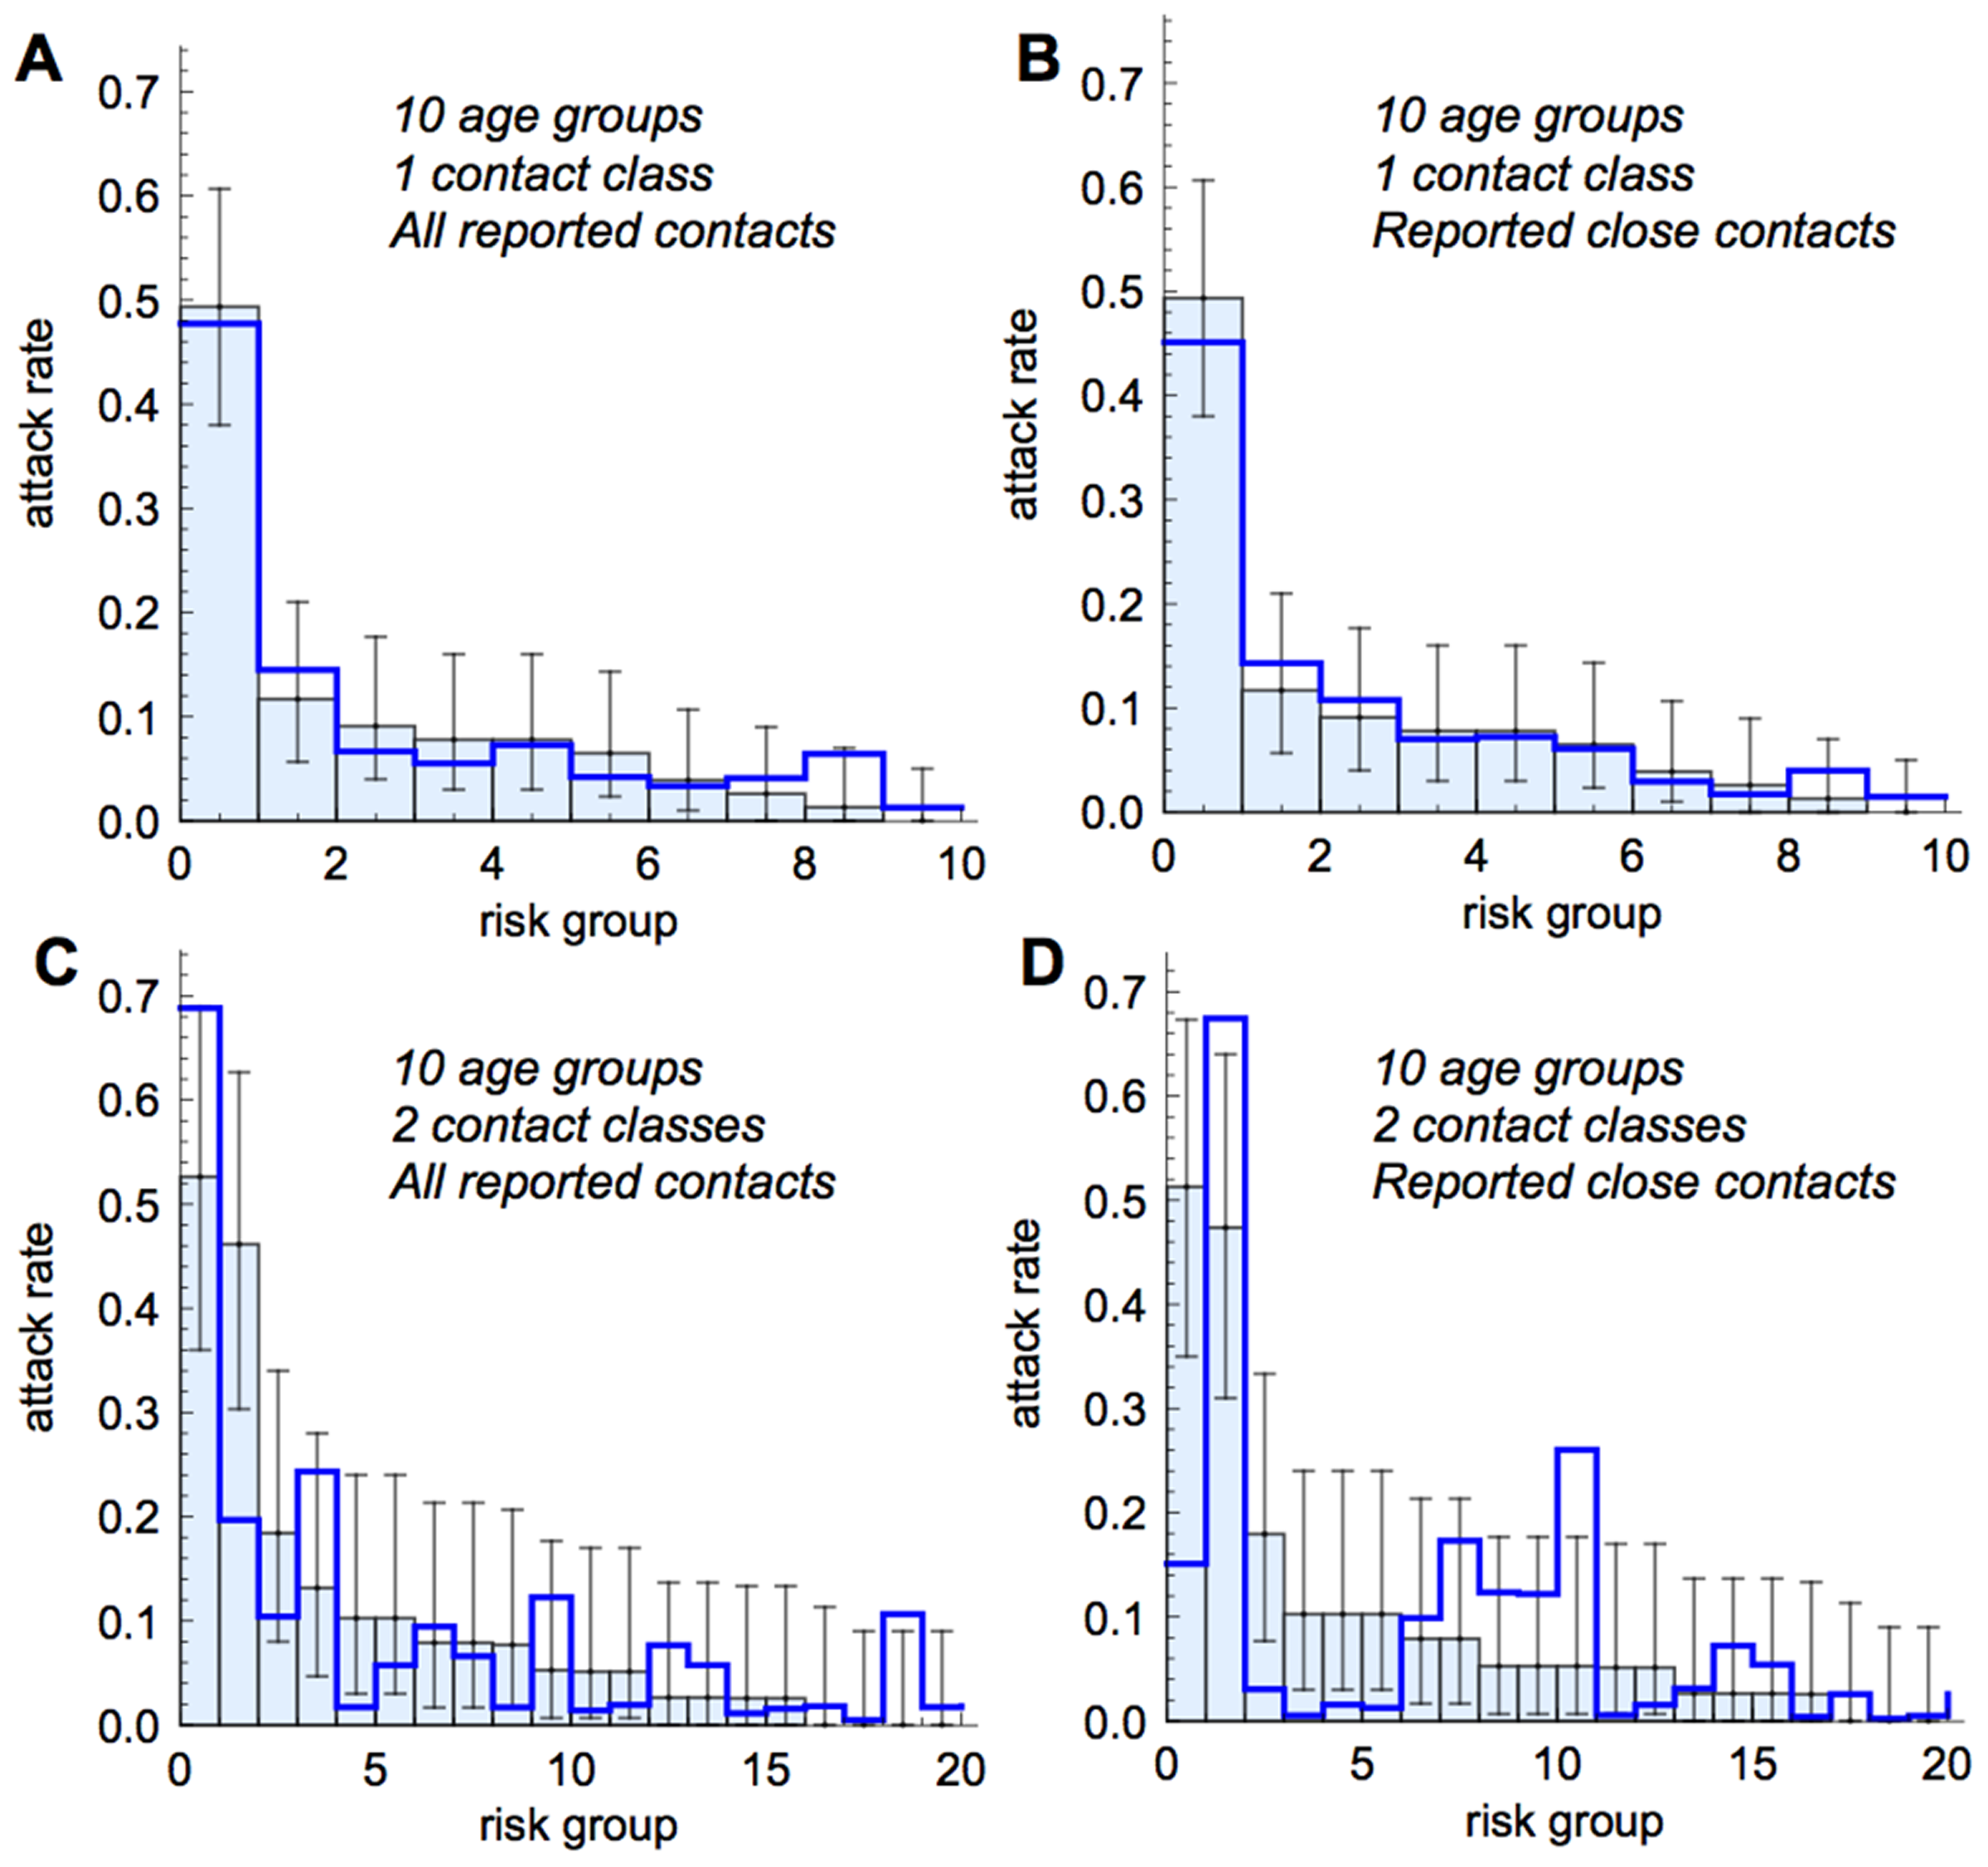 Comparison of model fits to data, with classes sorted by empirically observed risk of infection.